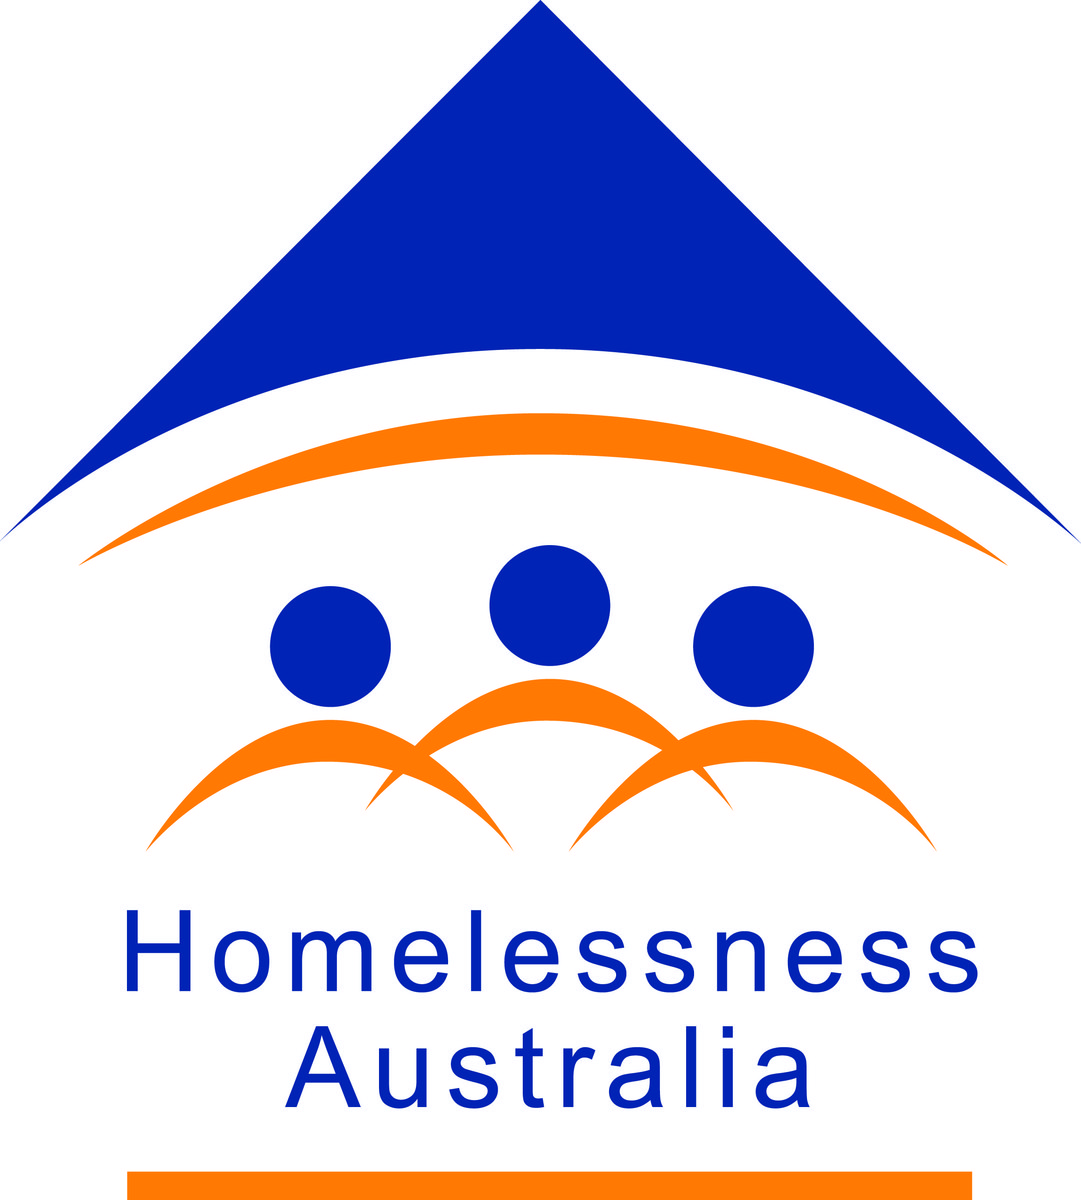 an introduction to the issue of homelessness in australia Academic knowledge and contemporary poverty:  ryan-flood, r, gill, r (2009) introduction in:  the politics of homelessness research.